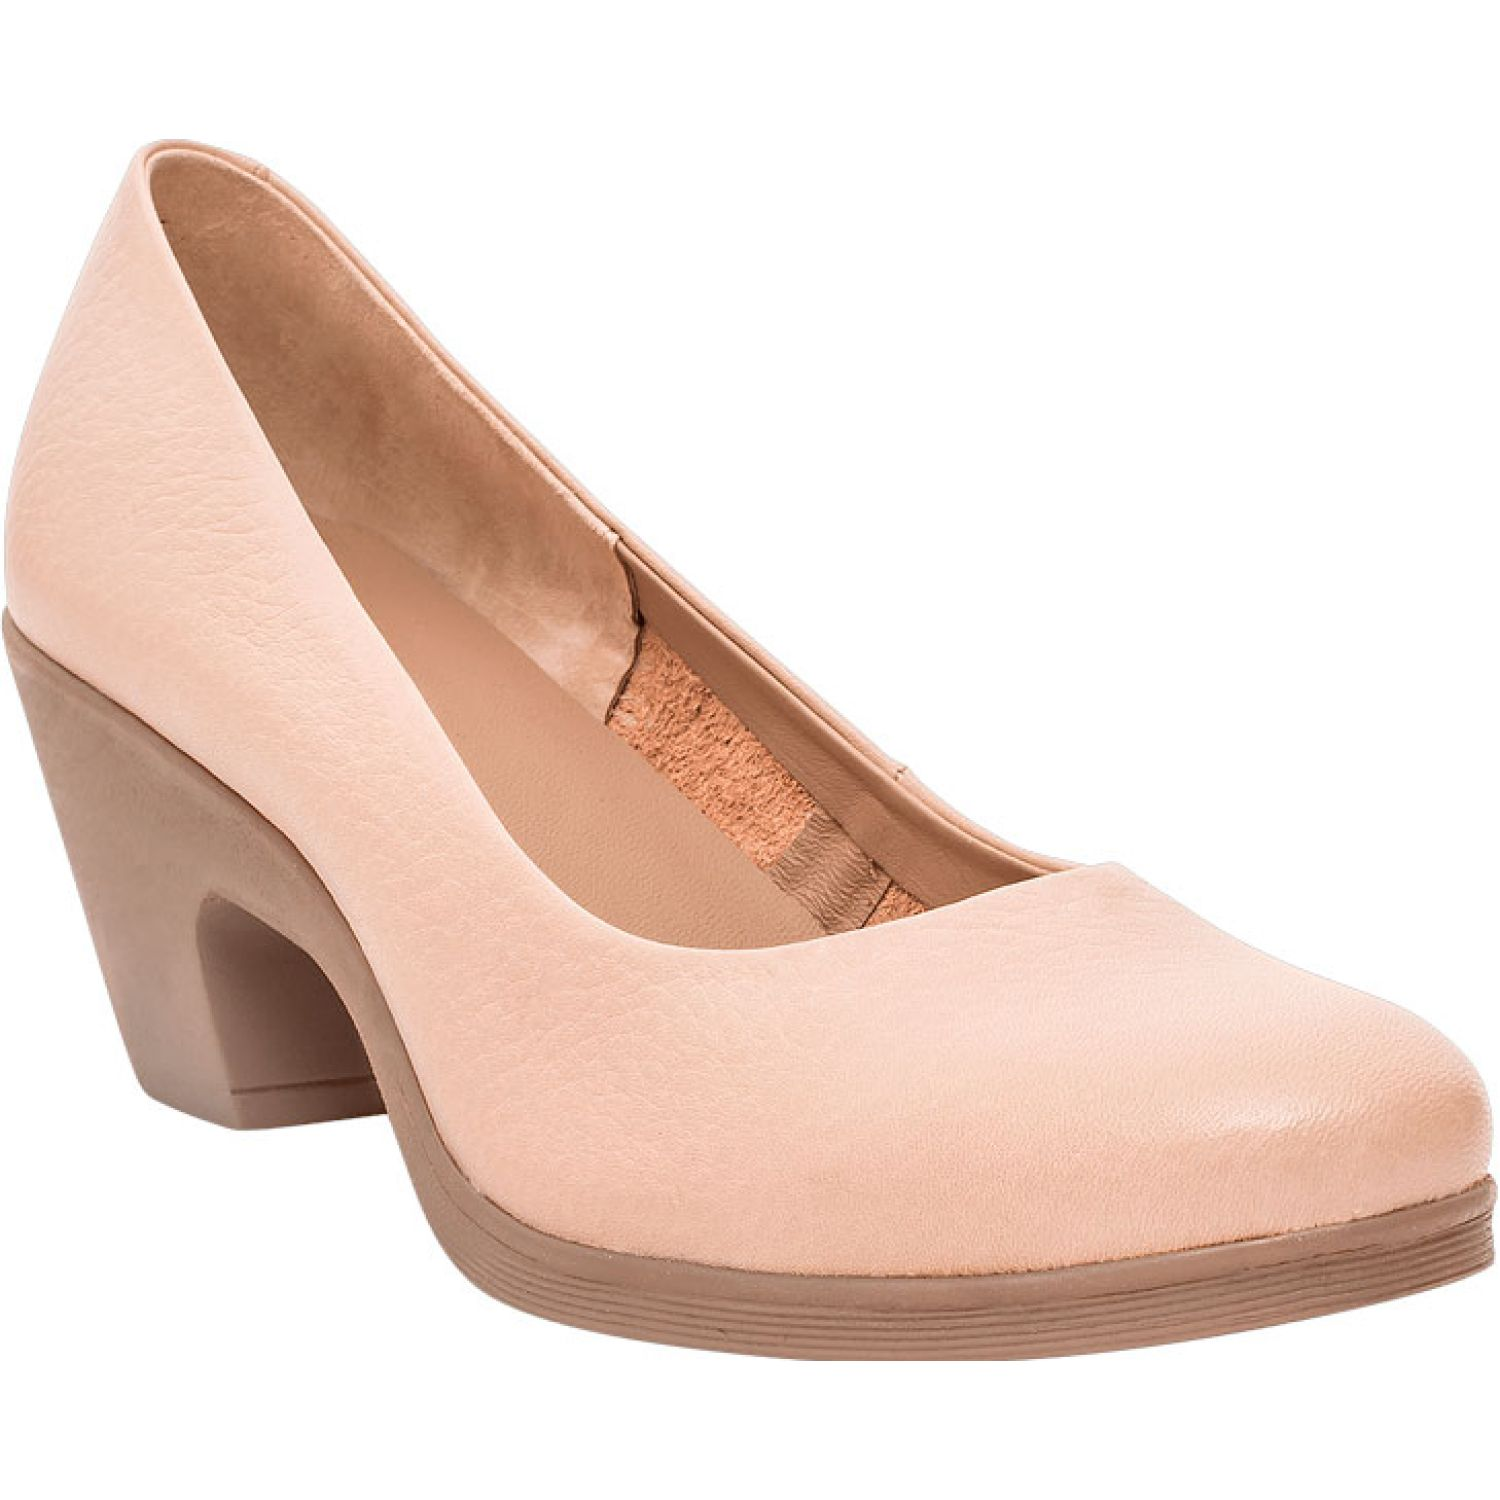 Ecco natalie44 Nude Estiletos y Pumps